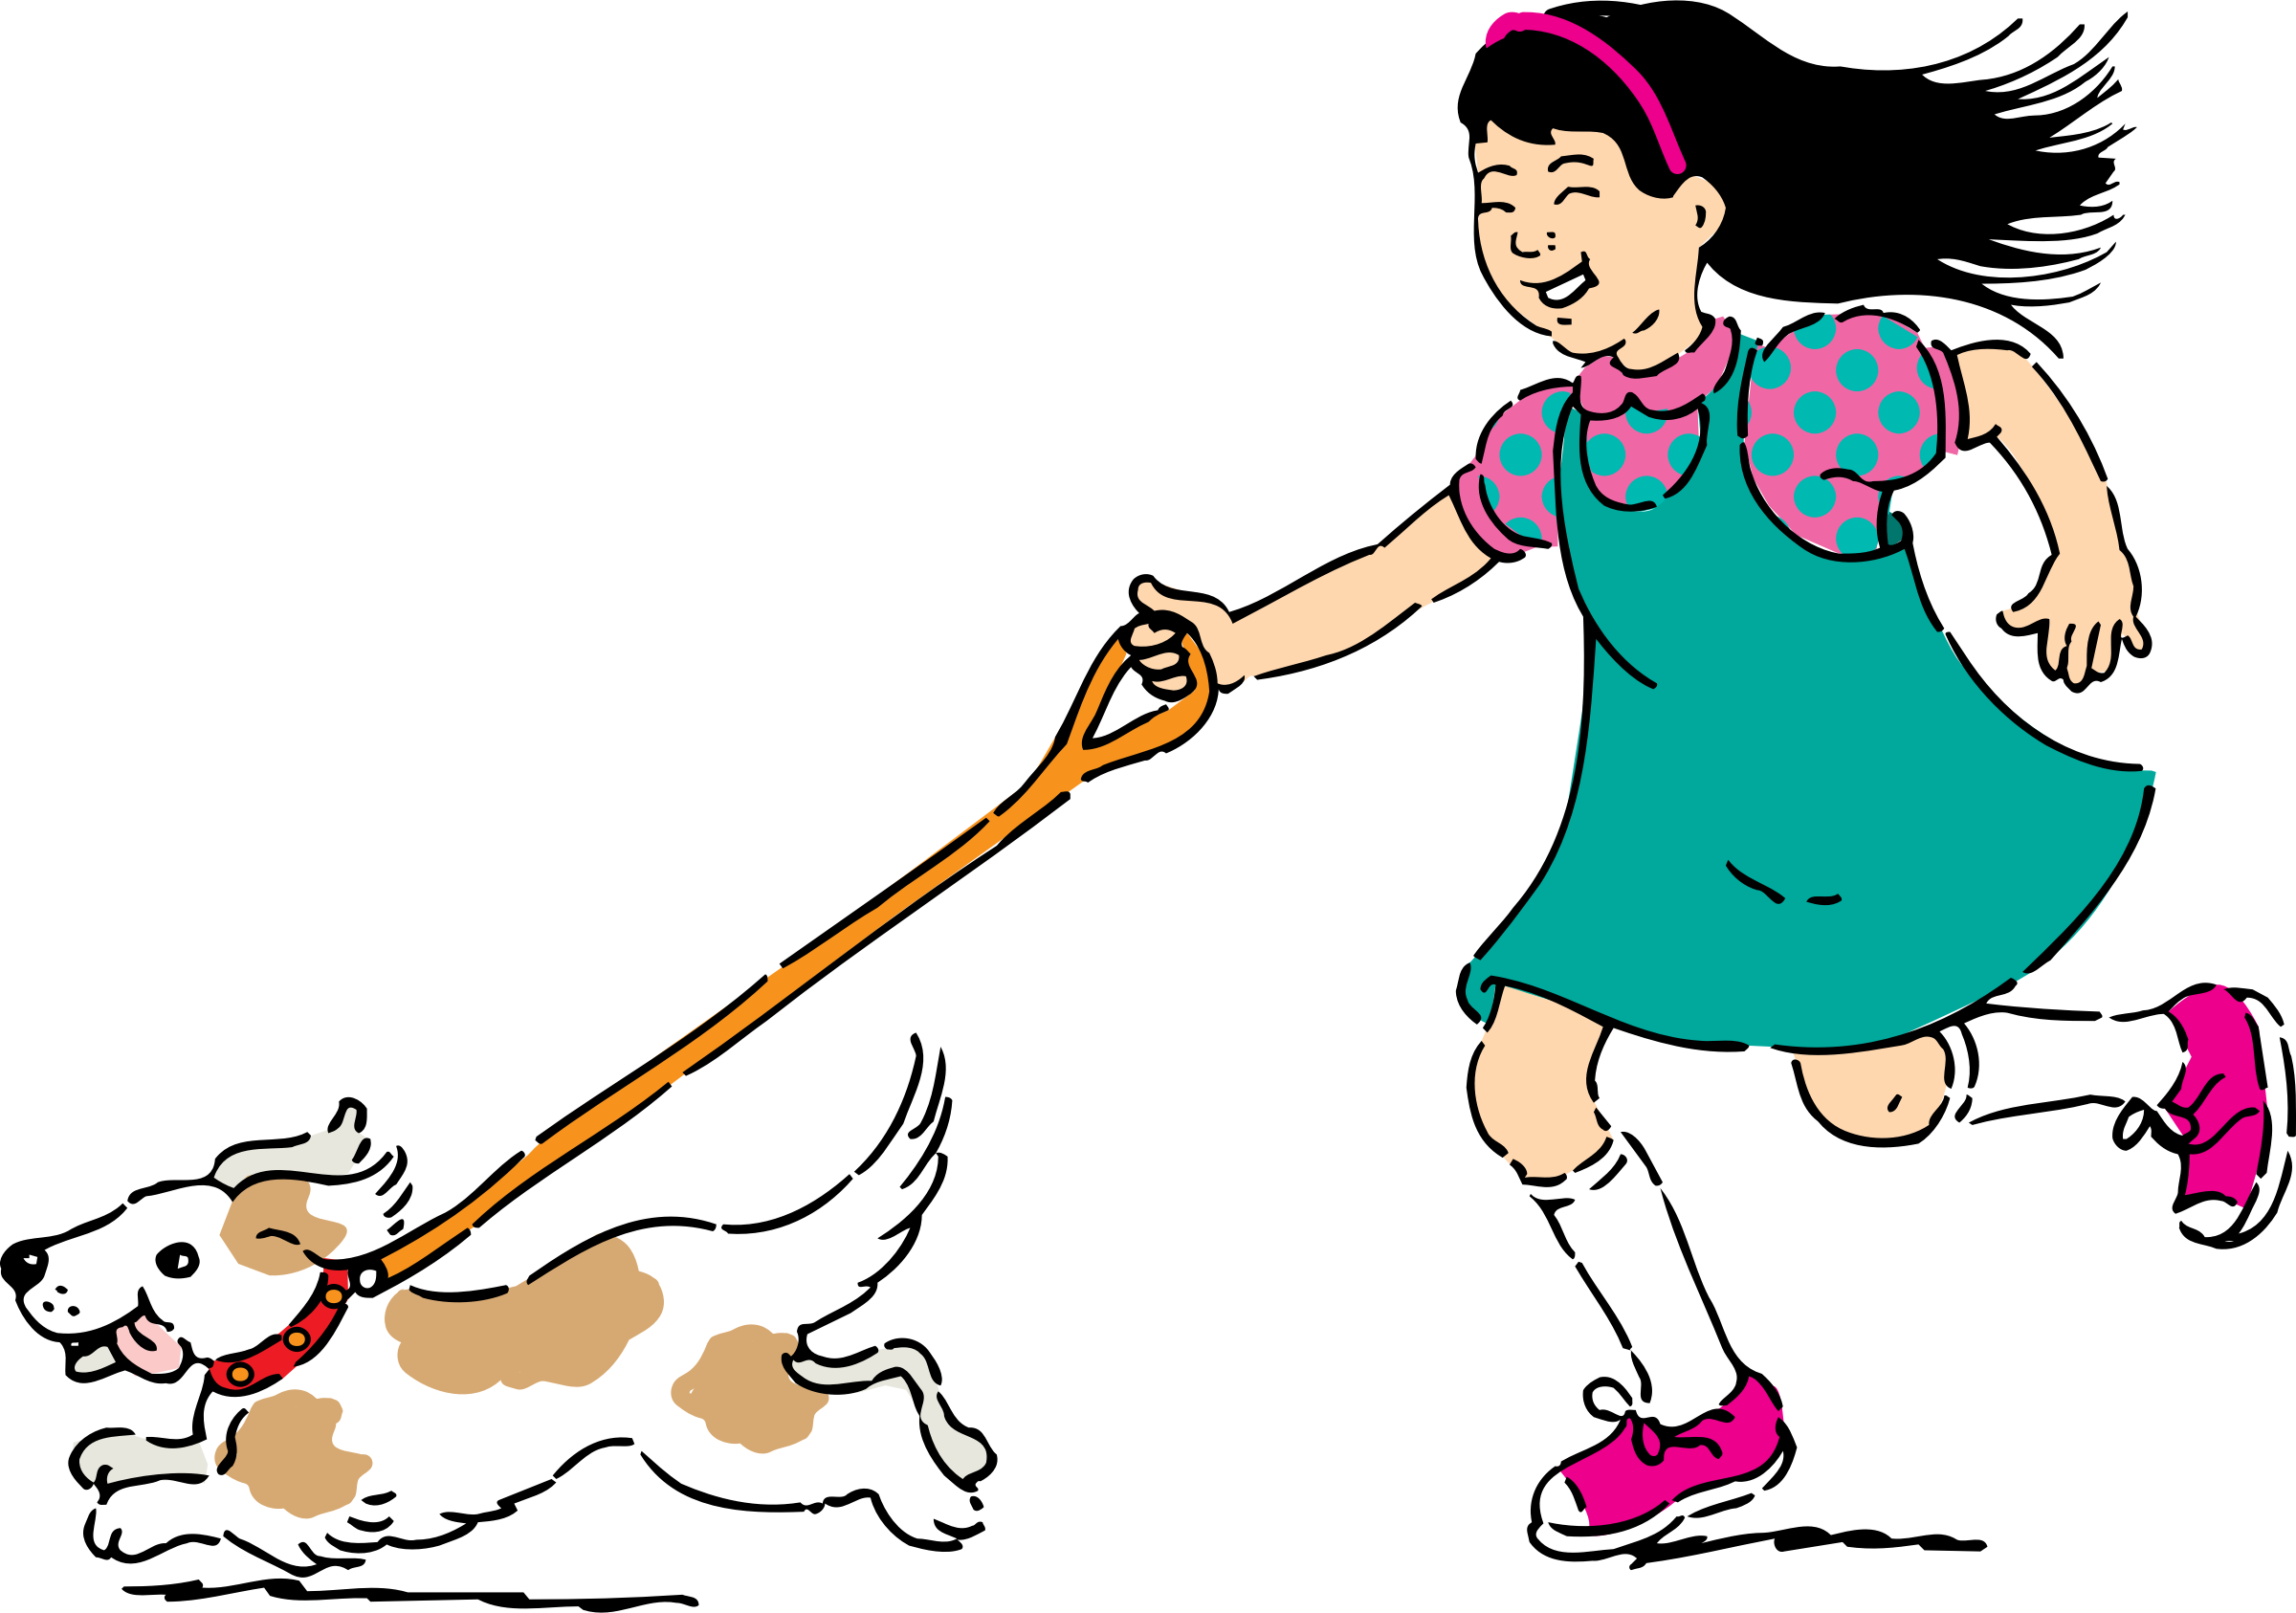 Dog animated clipart graphic free download Clipart - walking dog graphic free download